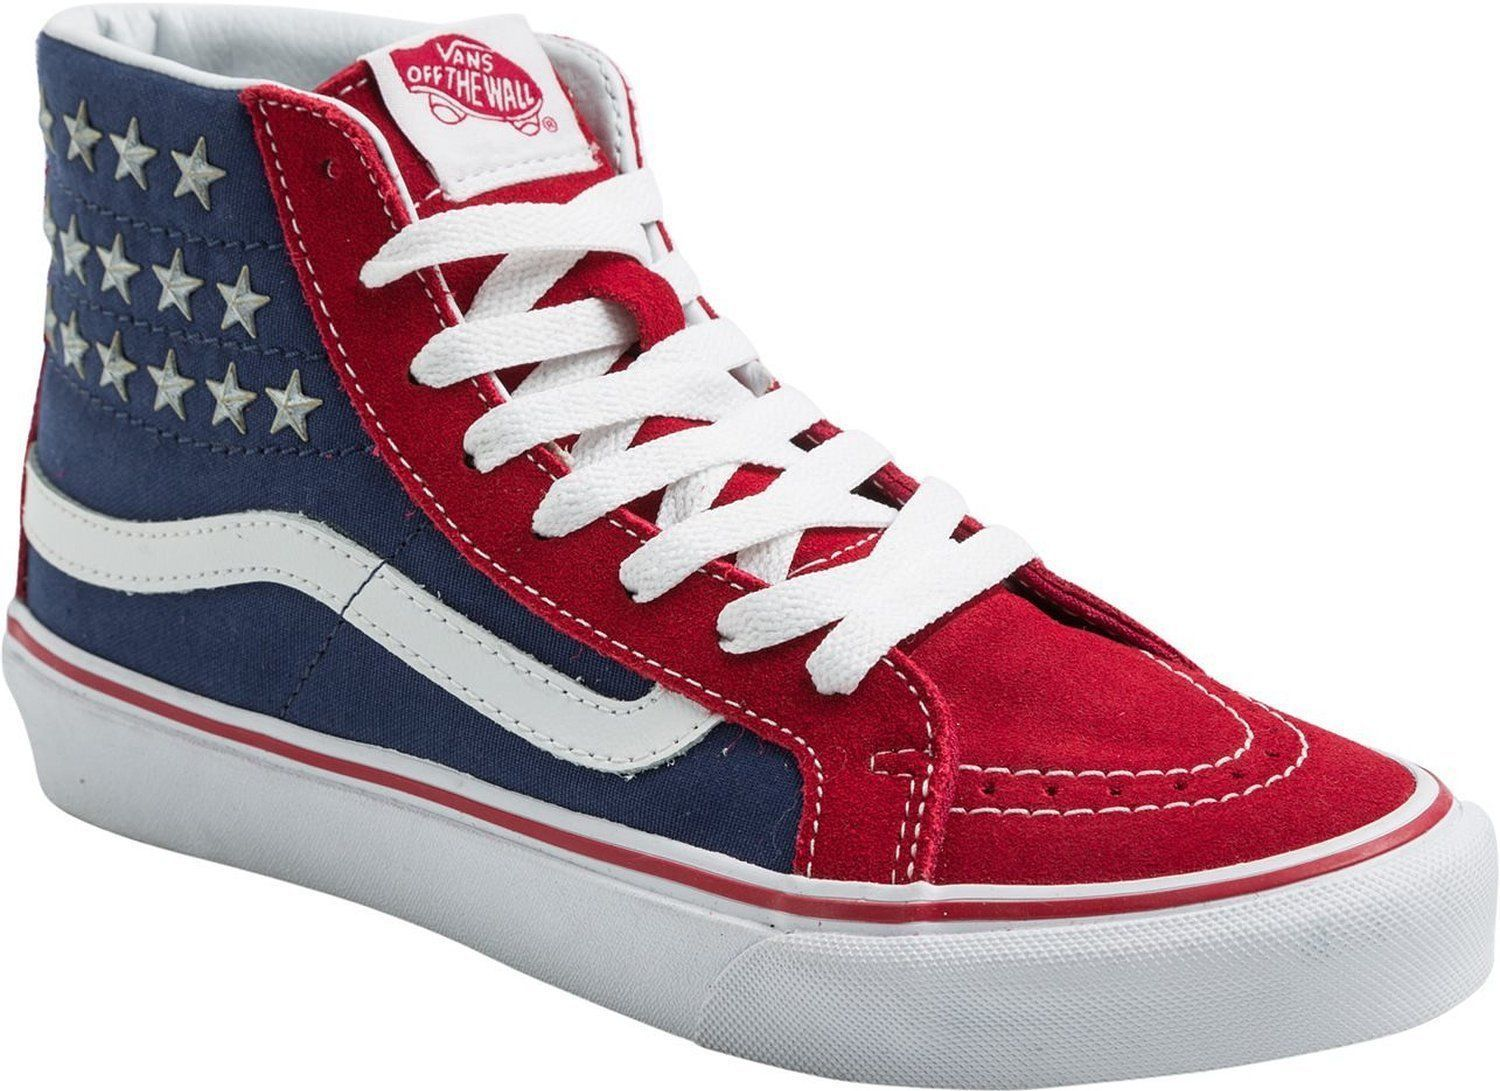 aa4fb68859311c VANS Sk8-Hi Slim Studded Stars Sneakers Shoes American Flag Red Blue NEW   70 Get classic in patriotic fashion with these high top shoes that feature  an ...